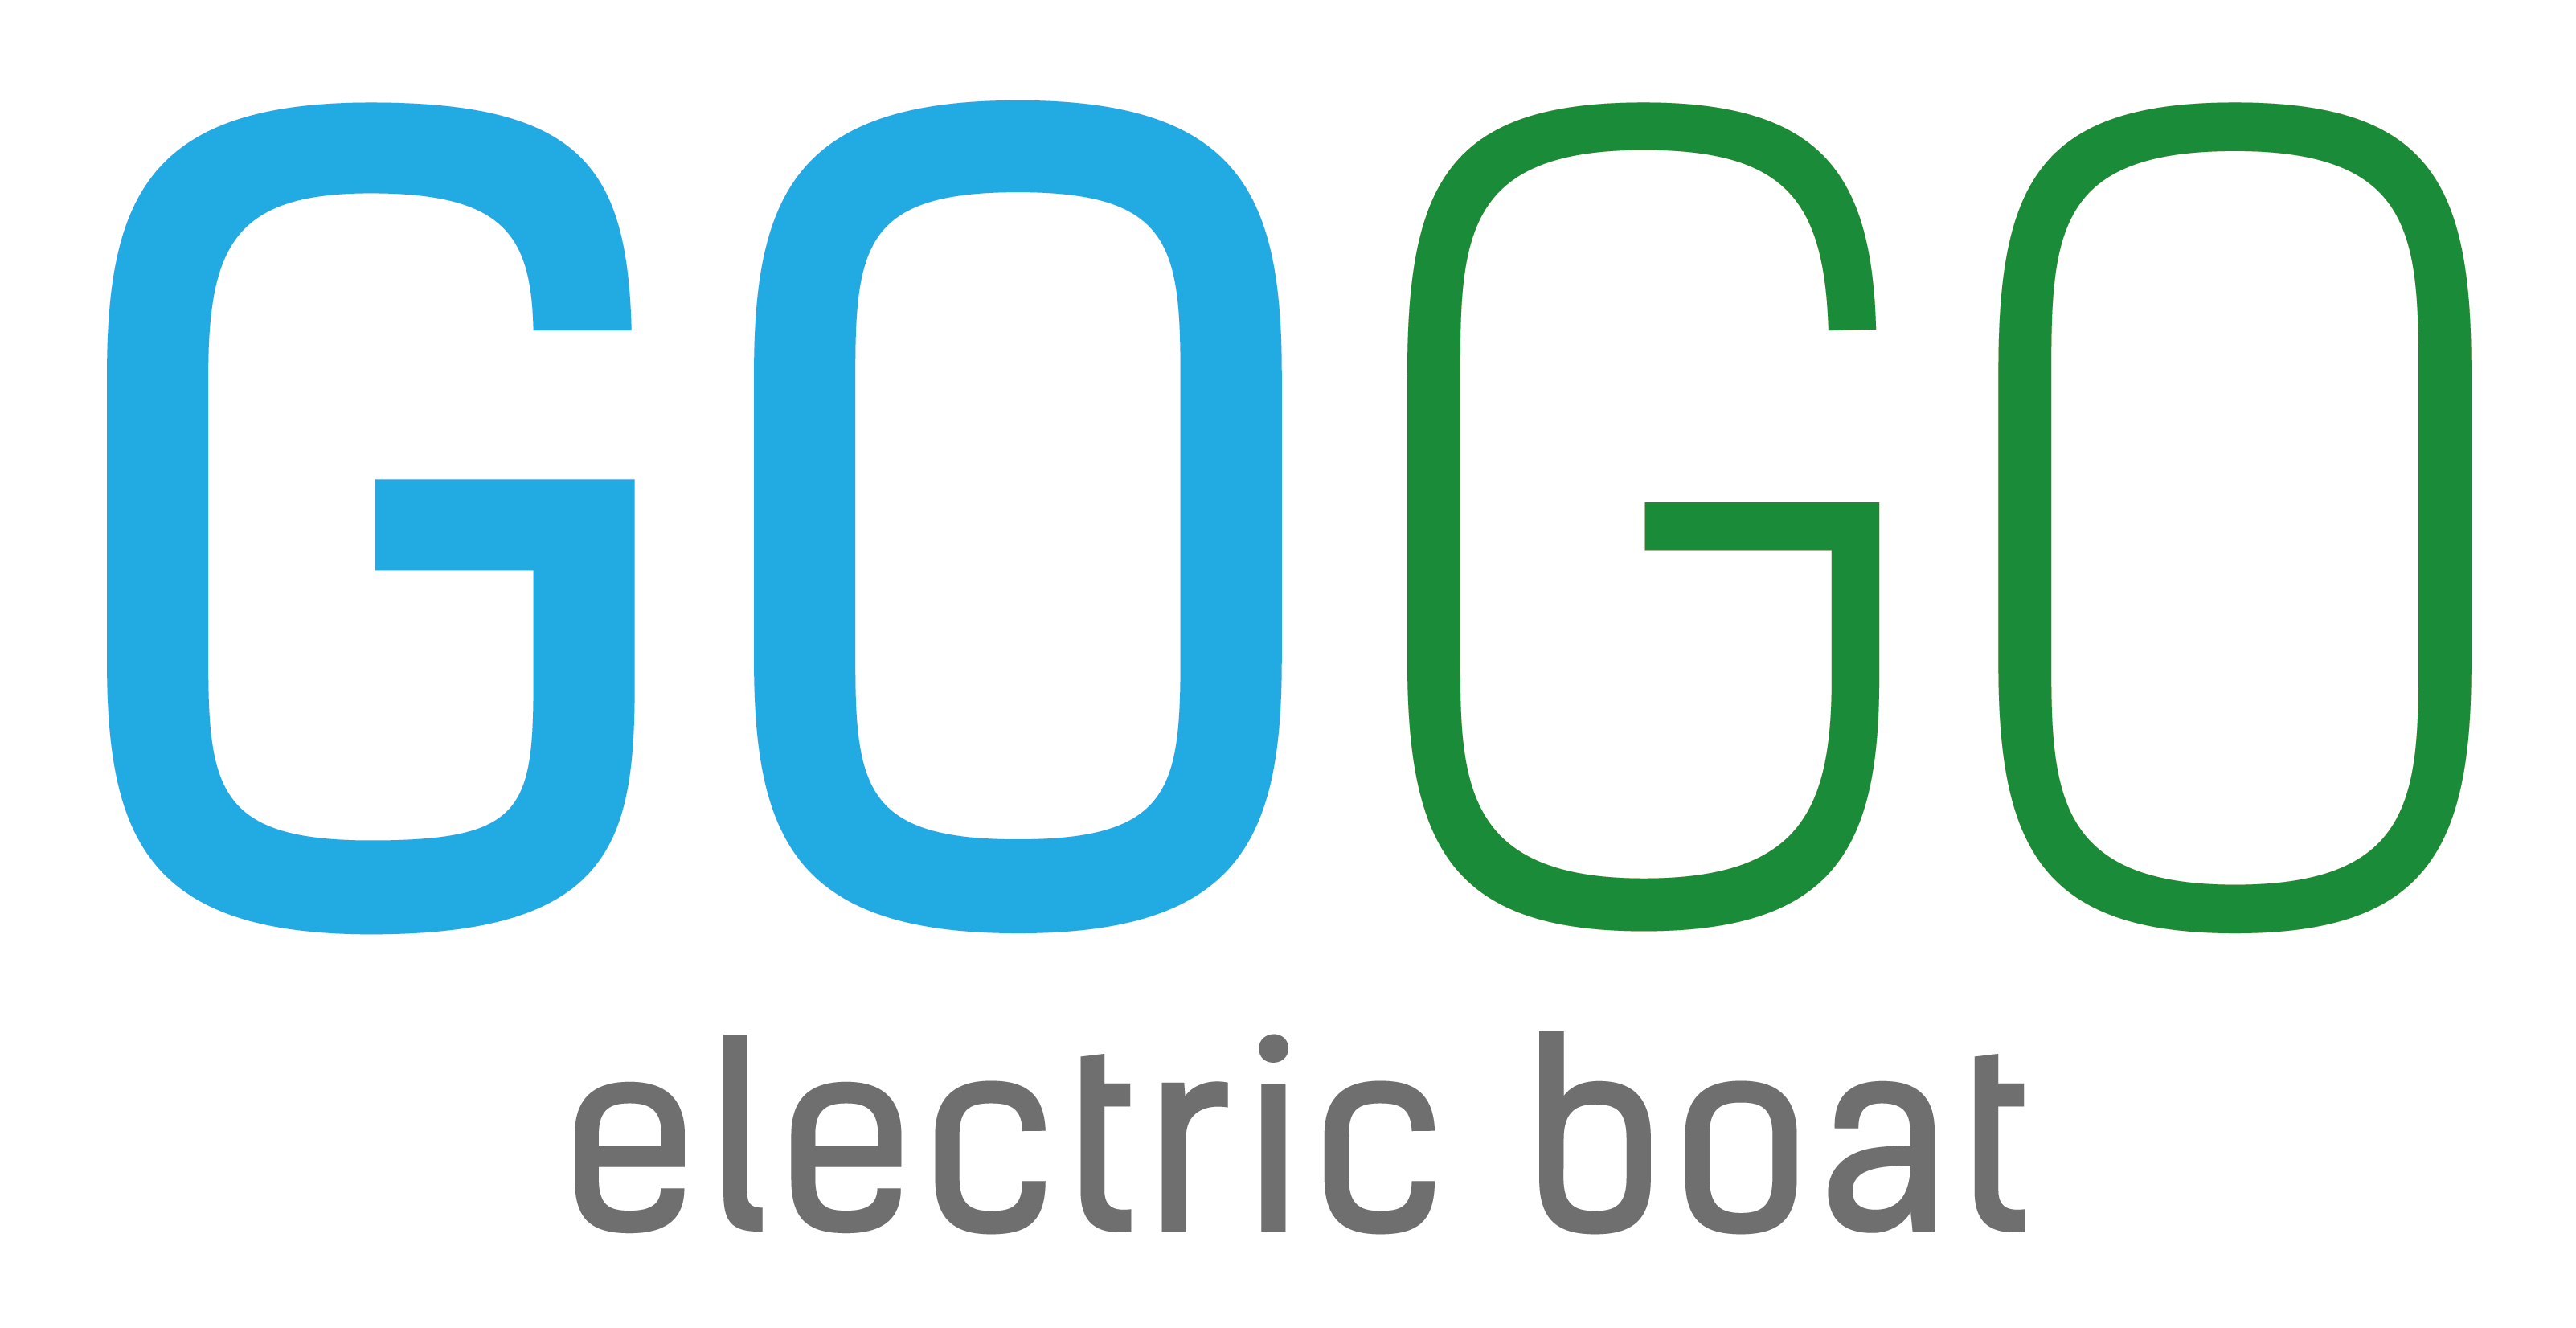 GOGO Electric Boat